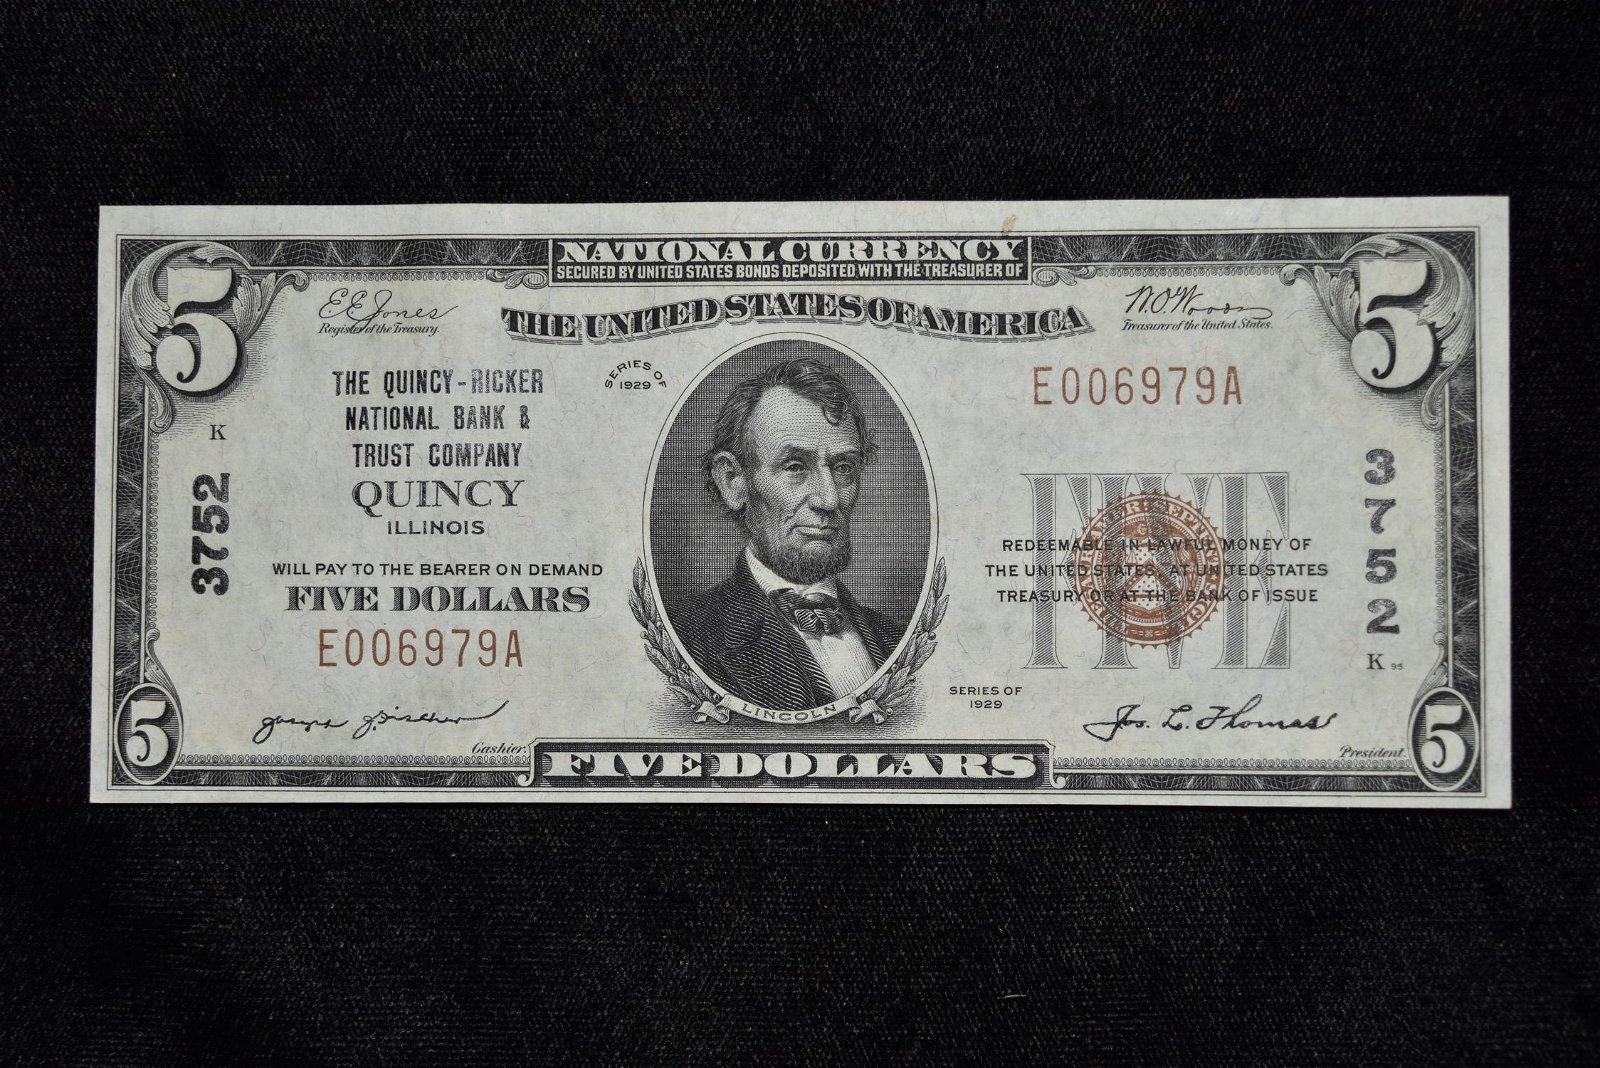 $5 Silver Note, The Quincy-Ricker National Bank & Trust